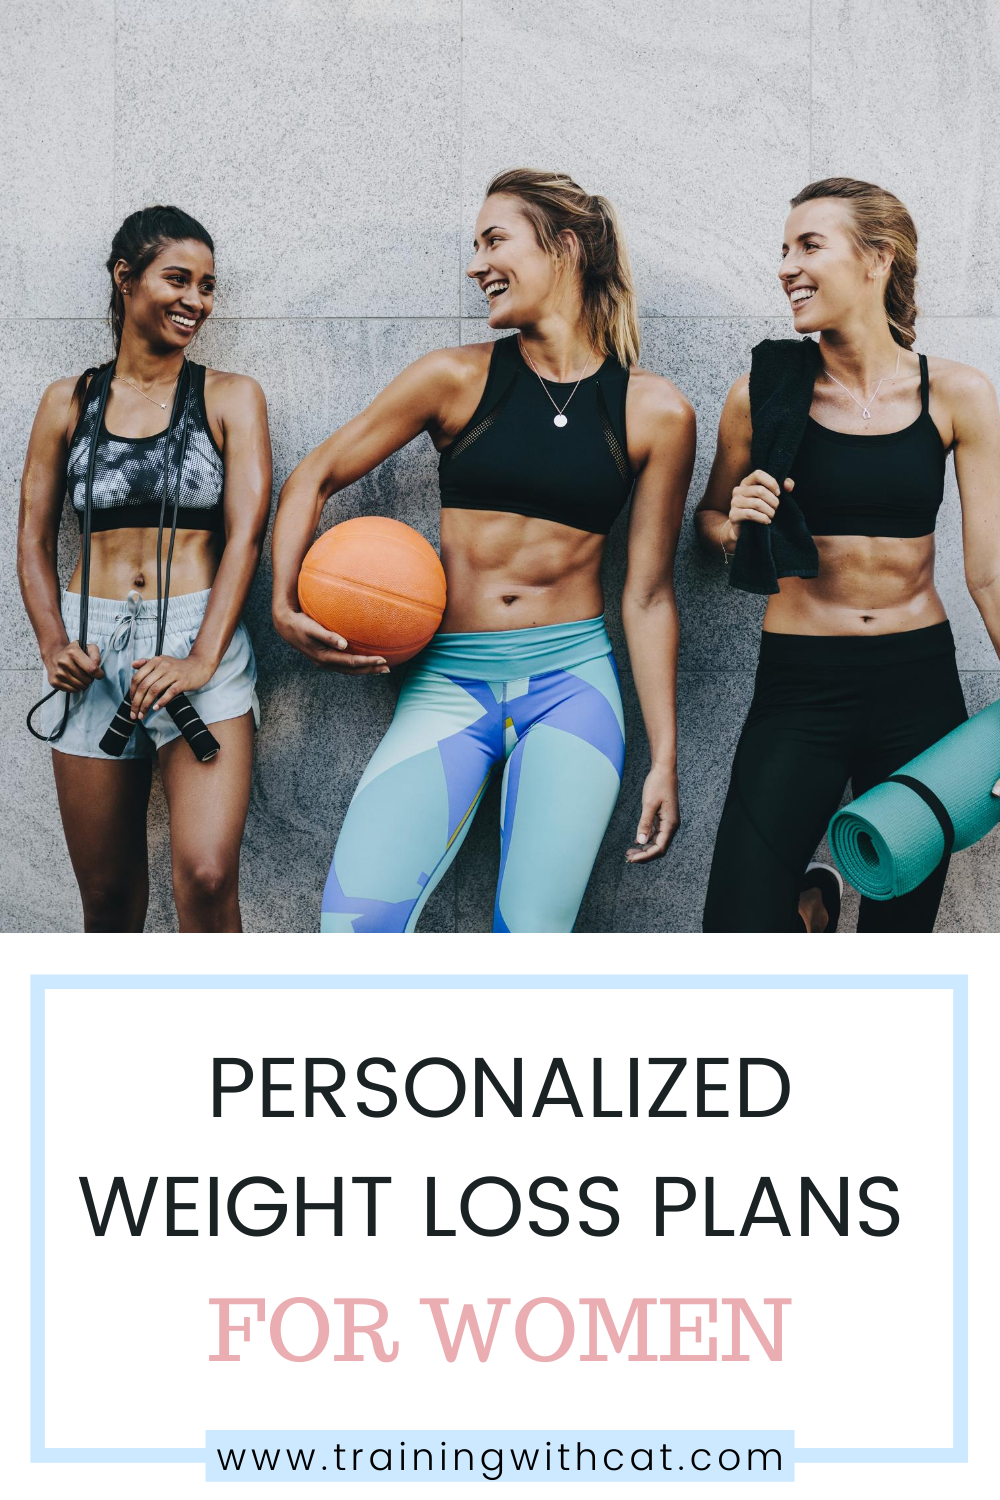 Personalized Weight Loss Plans For Women   Train with Cat